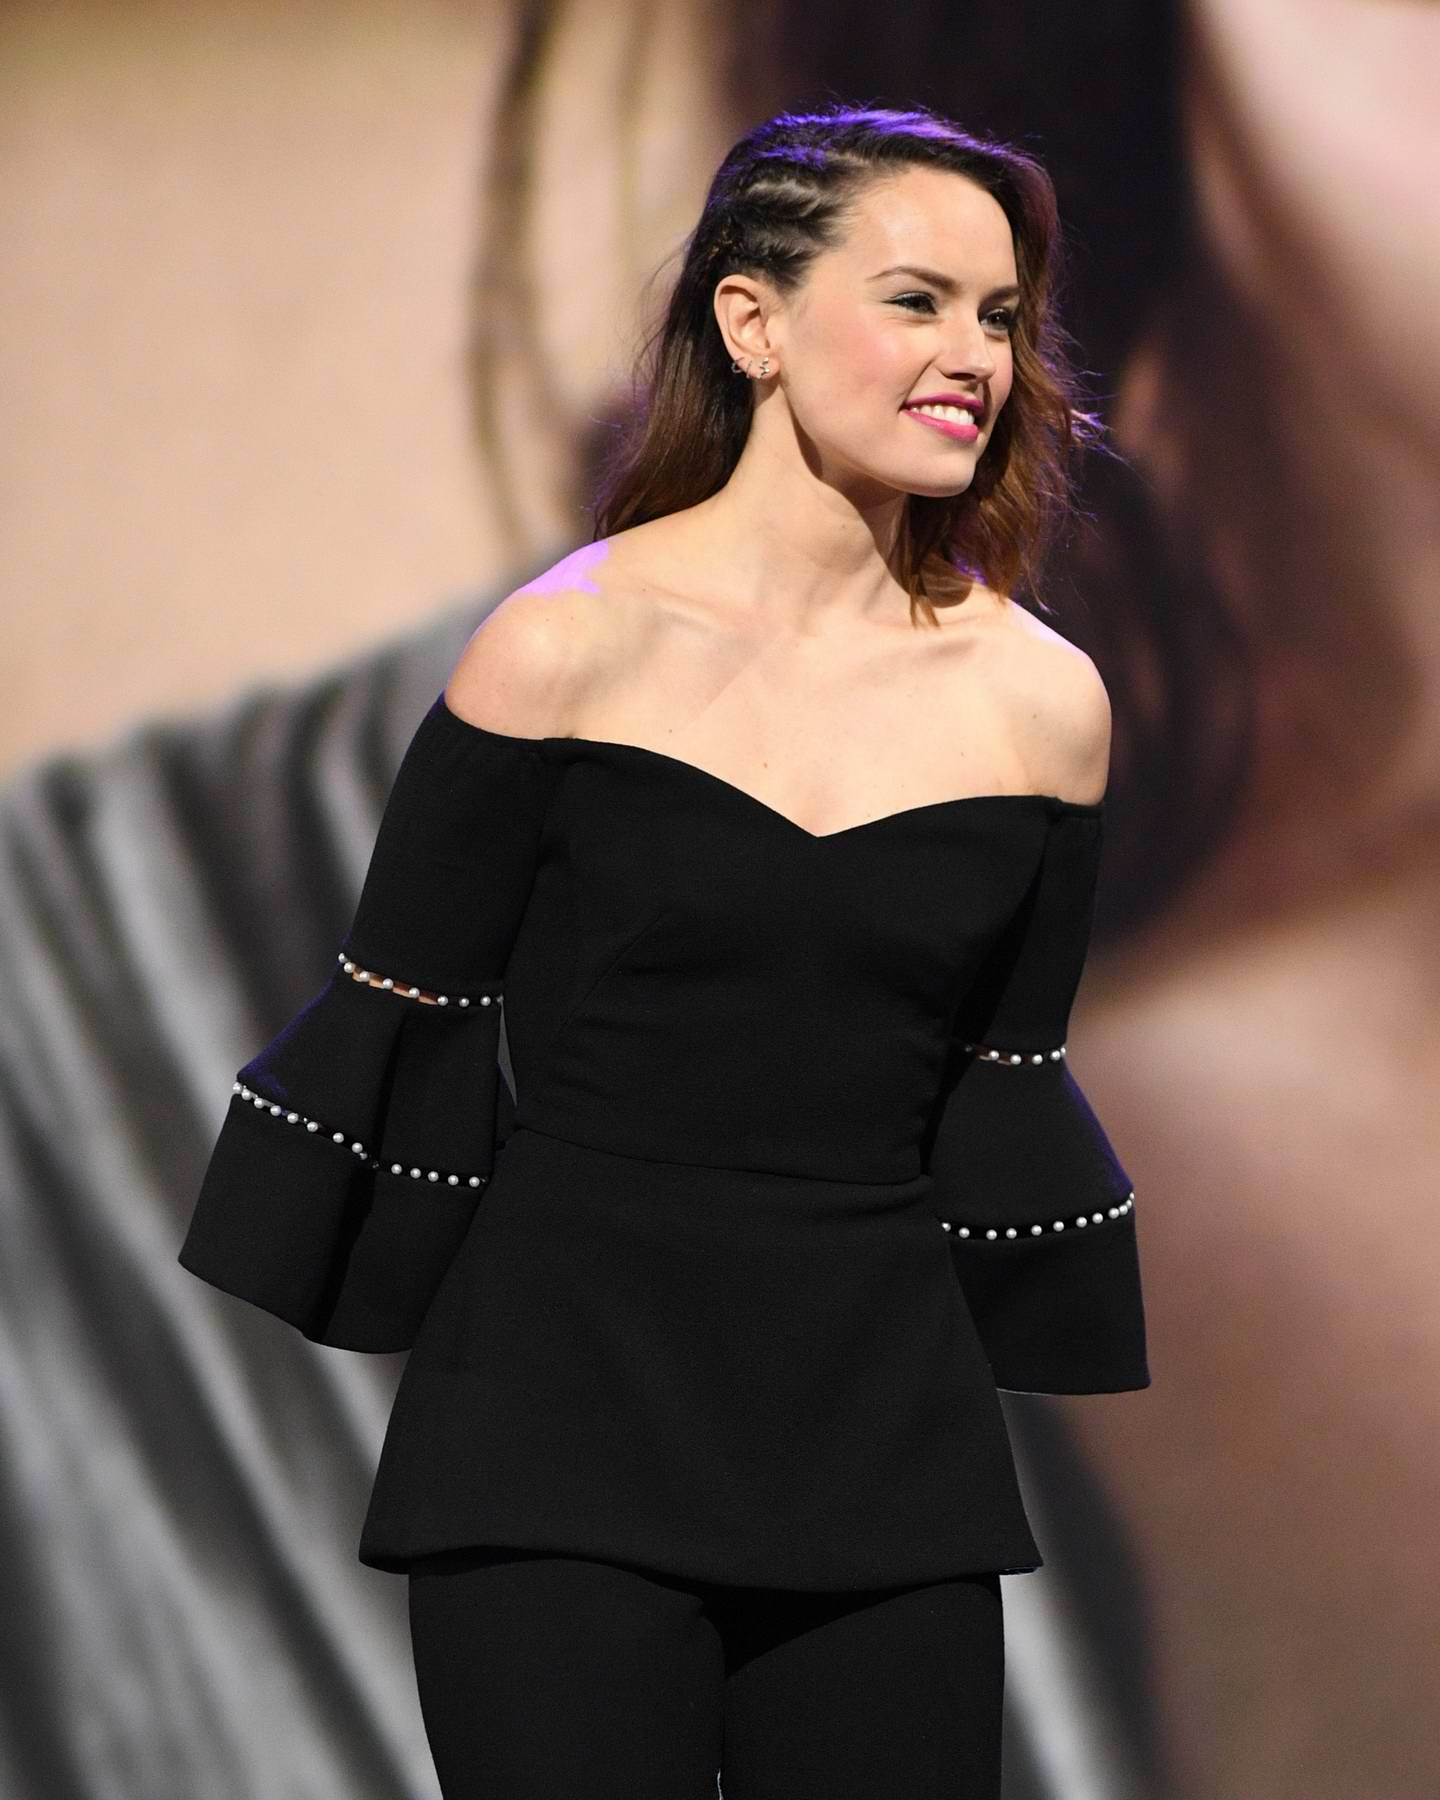 Daisy Ridley at Star Wars: The Last Jedi Presentation at Disney's D23 EXPO 2017 in Anaheim, California